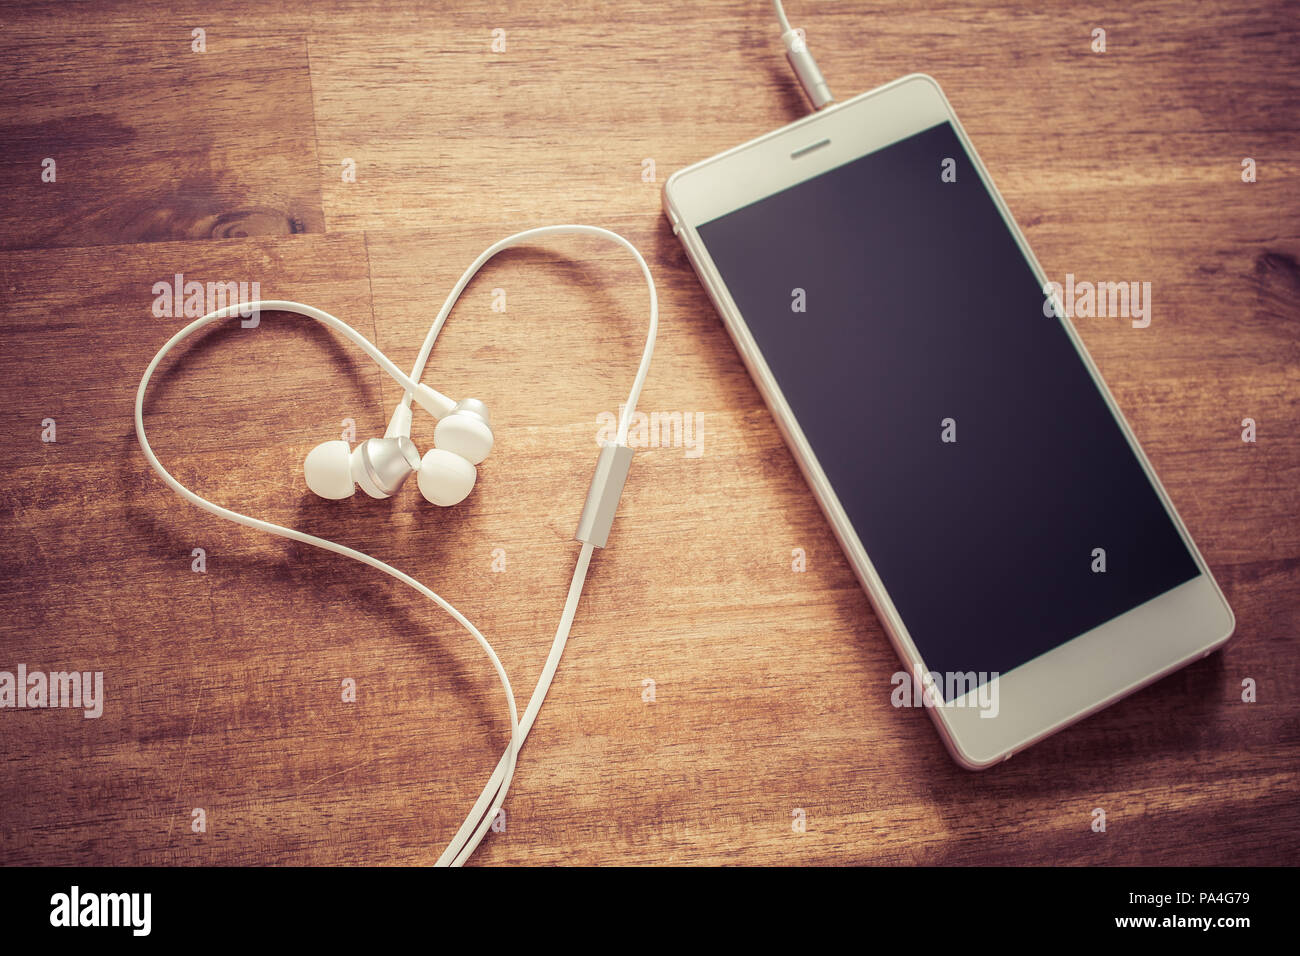 Love Listening Music Concept With White Mobile Phone And A Heart Shaped Headset Stock Photo Alamy